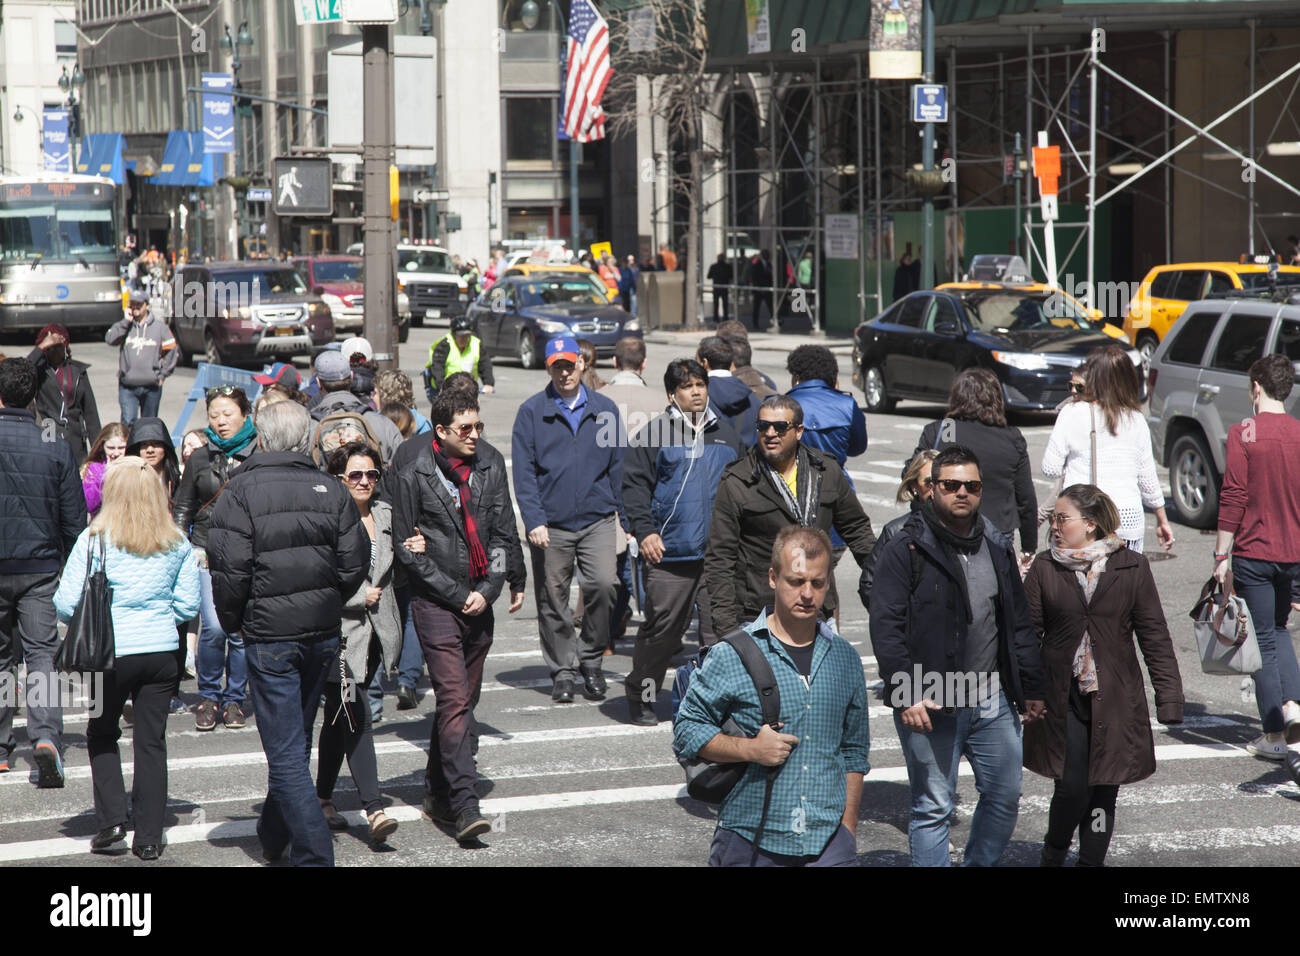 The always busy corner of 5th Avenue and 42nd Street in midtown Manhattan on a sunny spring day. - Stock Image